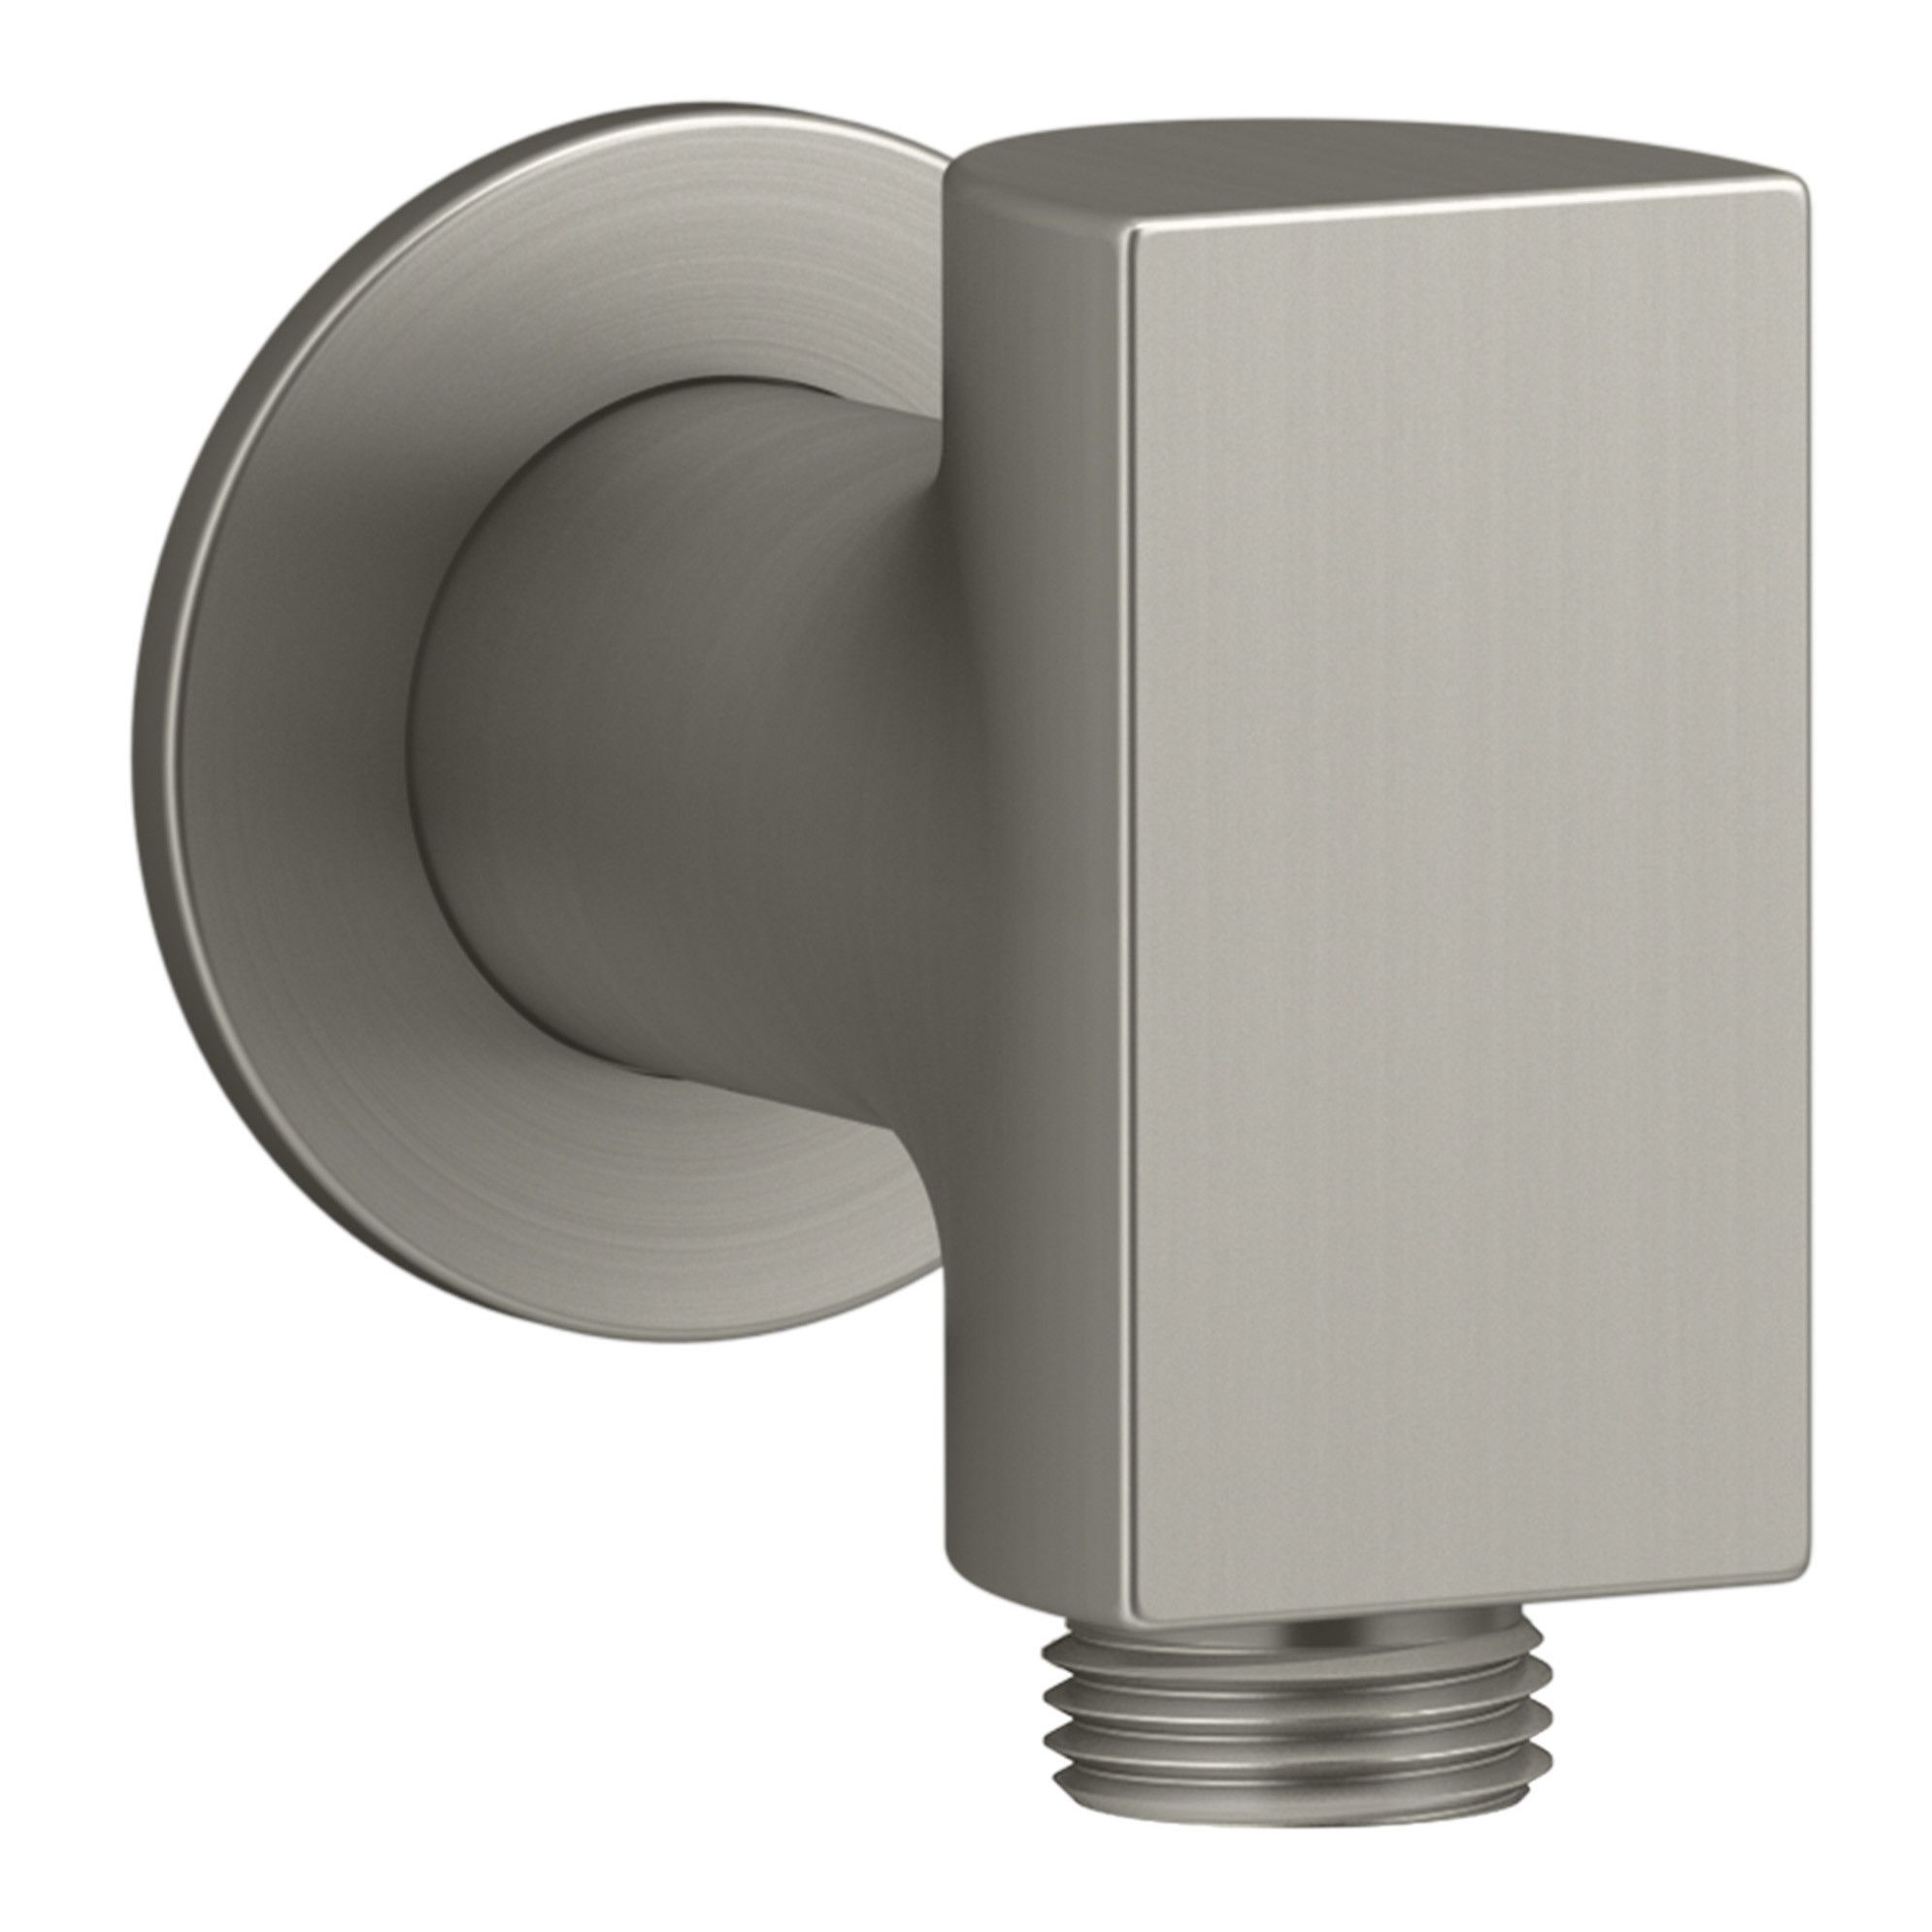 Exhale Wall-Mount Supply Elbow